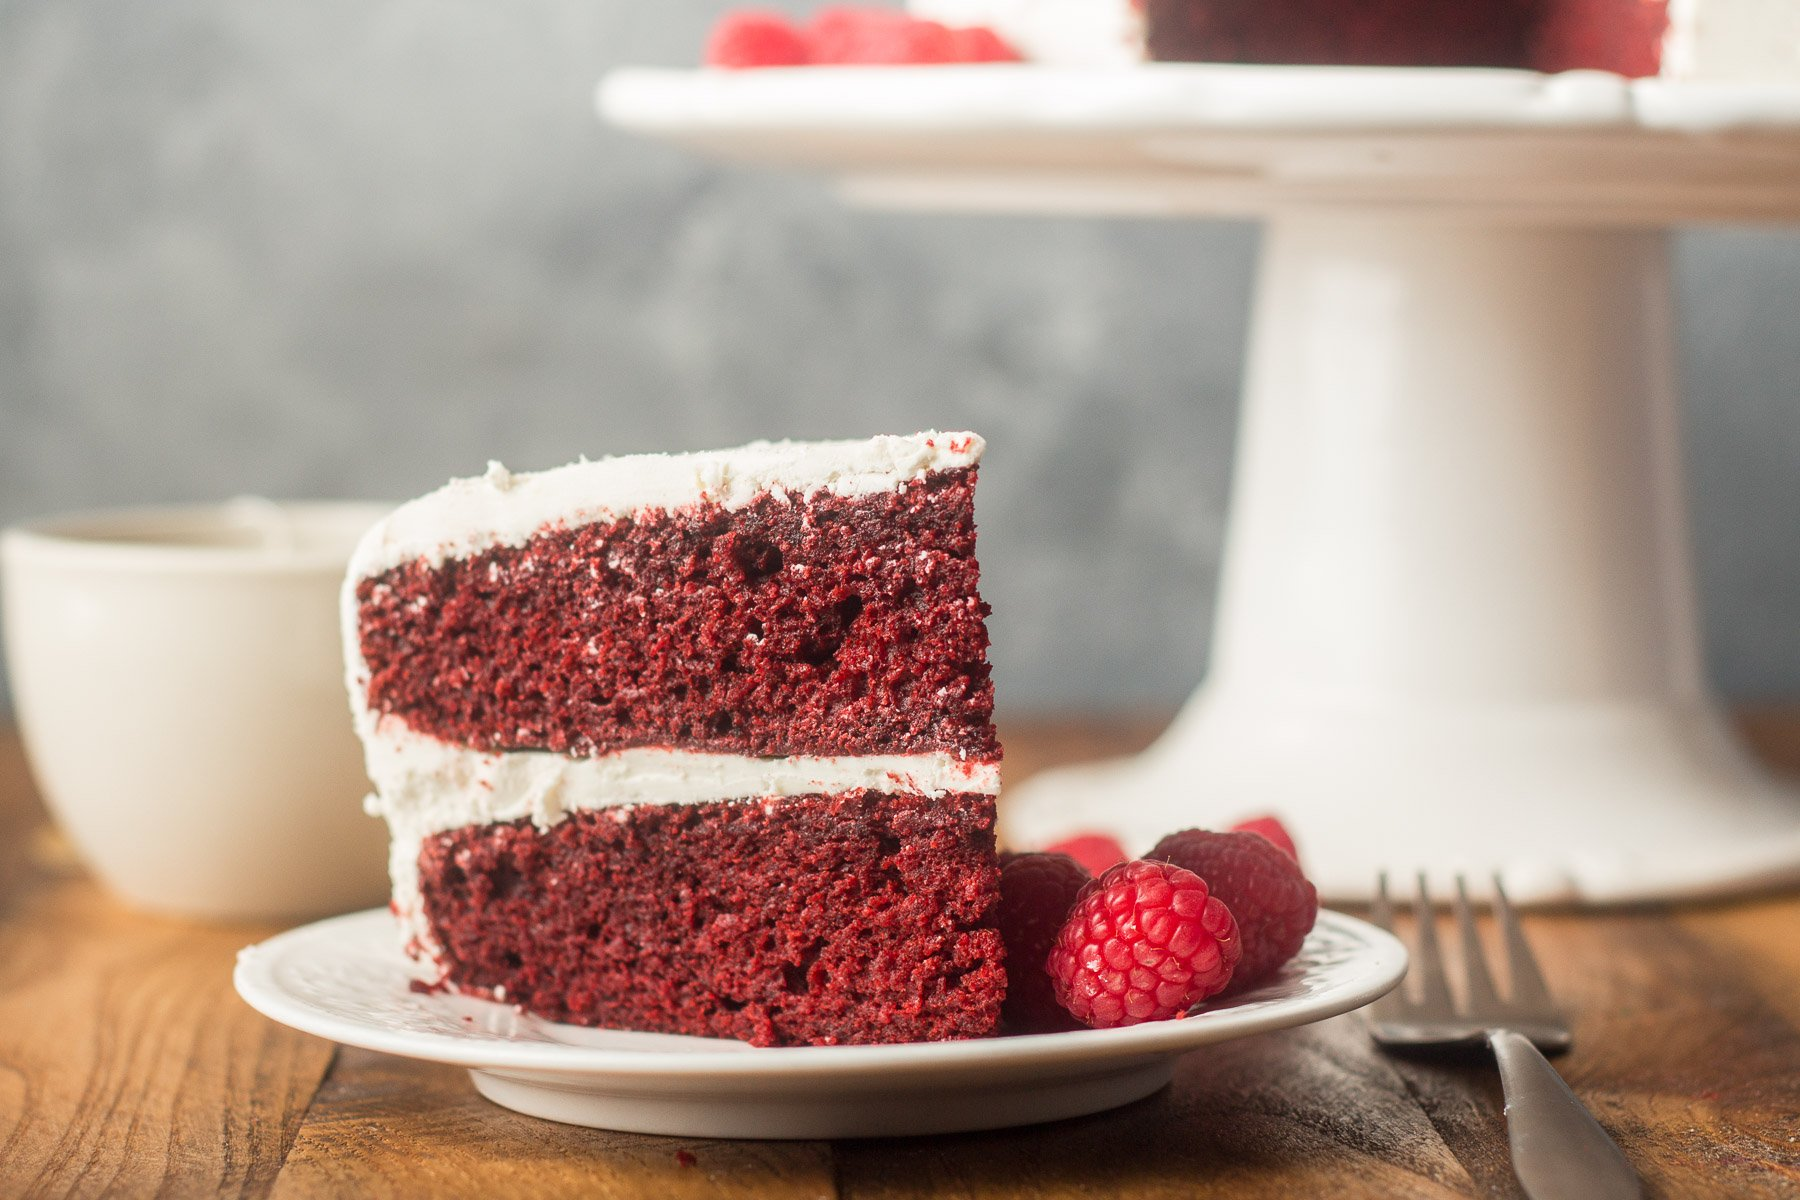 Slice of Vegan Red Velvet Cake on a Plate with Raspberries